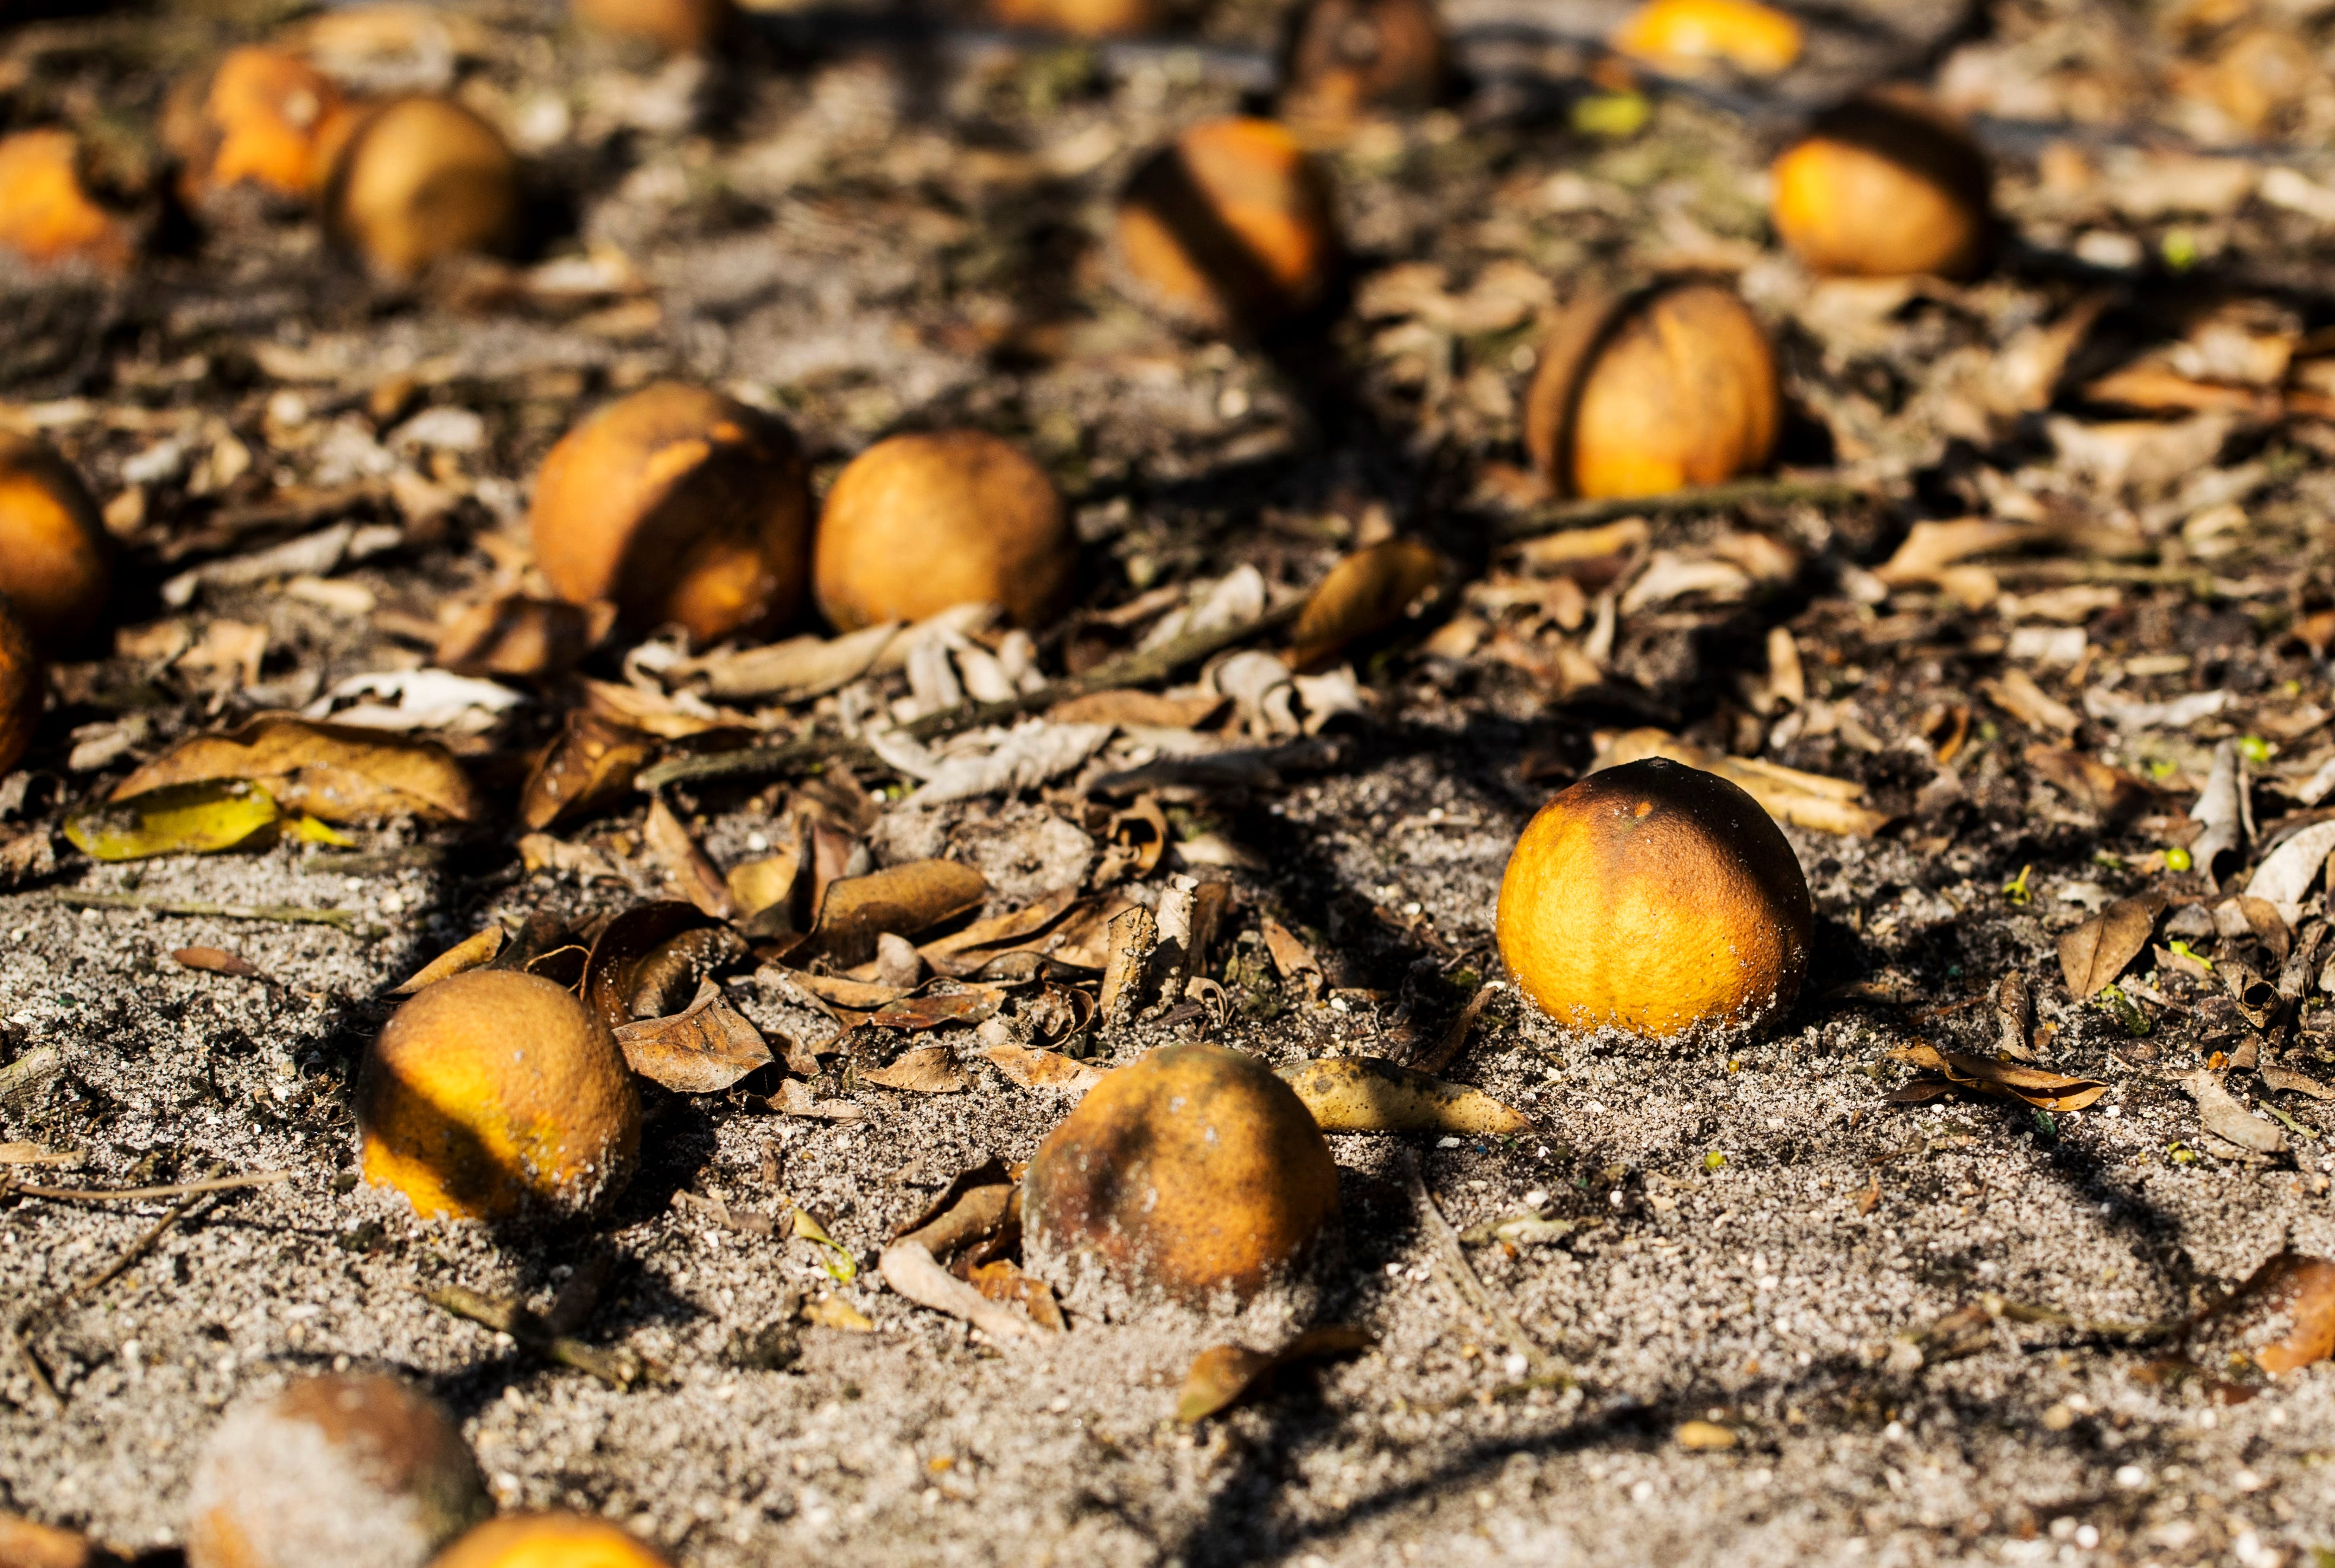 The loss of income from the thousands of oranges that dropped as George Winslow waited for a juice processing slot keeps Winslow up at night. Mounds of wasted fruit gathered beneath his grove's trees on Monday, April 27, 2020.  He estimates the loss at around a $1 million.